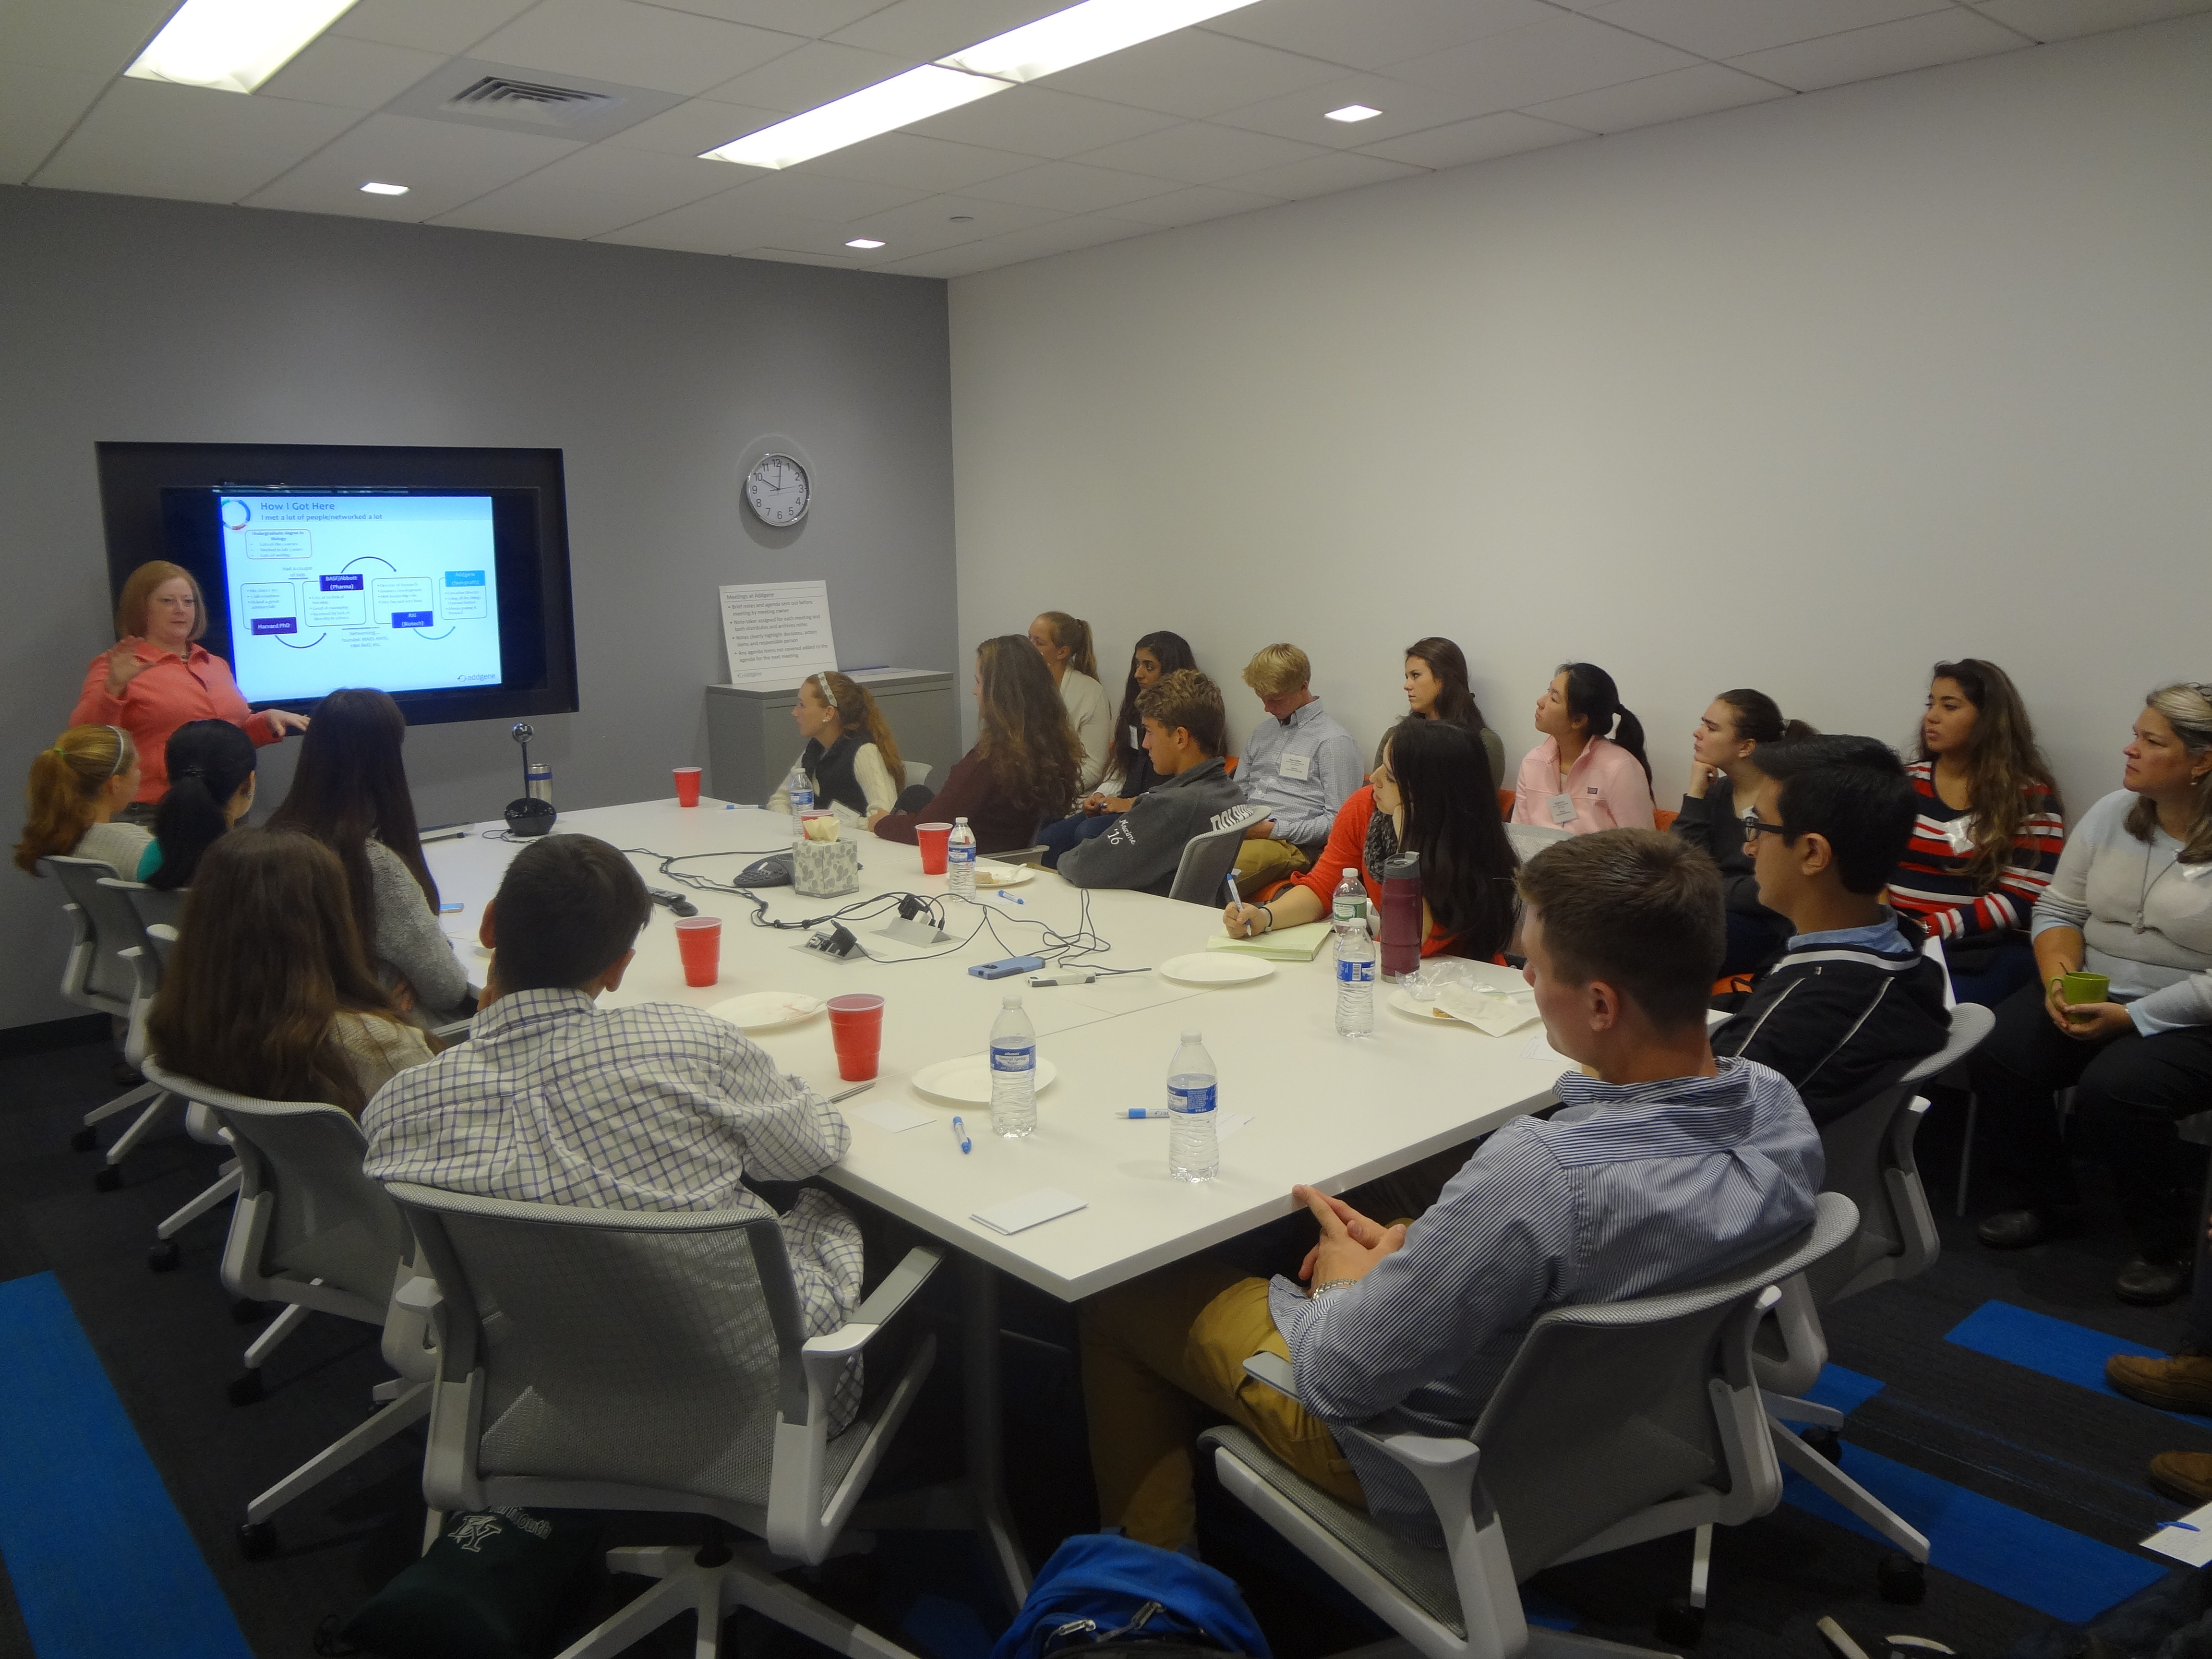 Addgene Executive Director Joanne Kamens teaches MassBioEd students about careers and networking